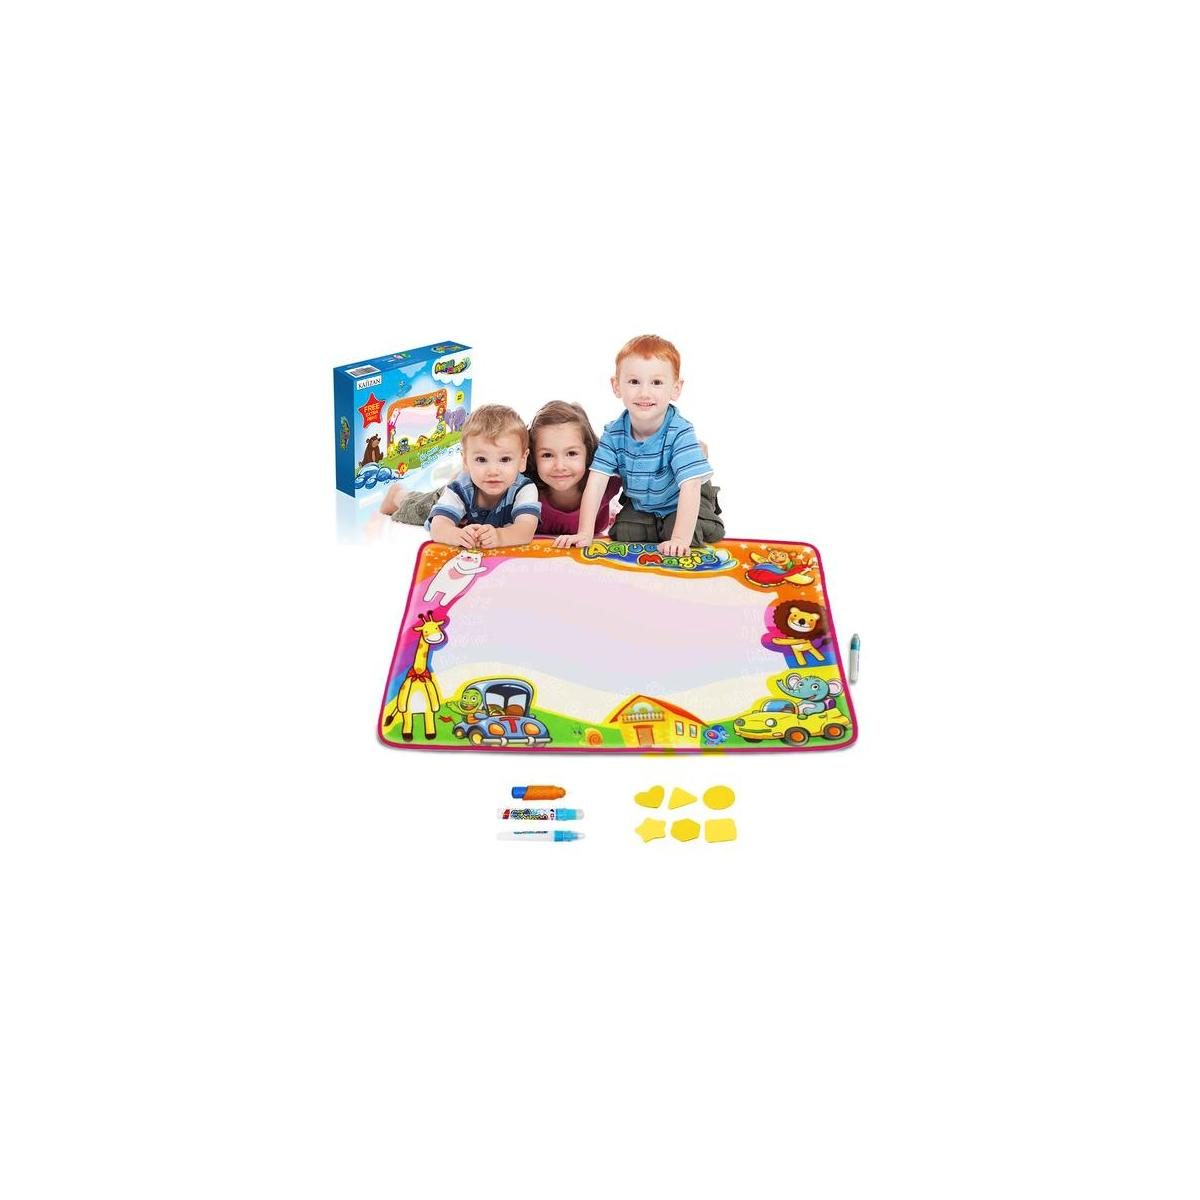 Aqua Magic Mat - Aqua Doodle Bundle